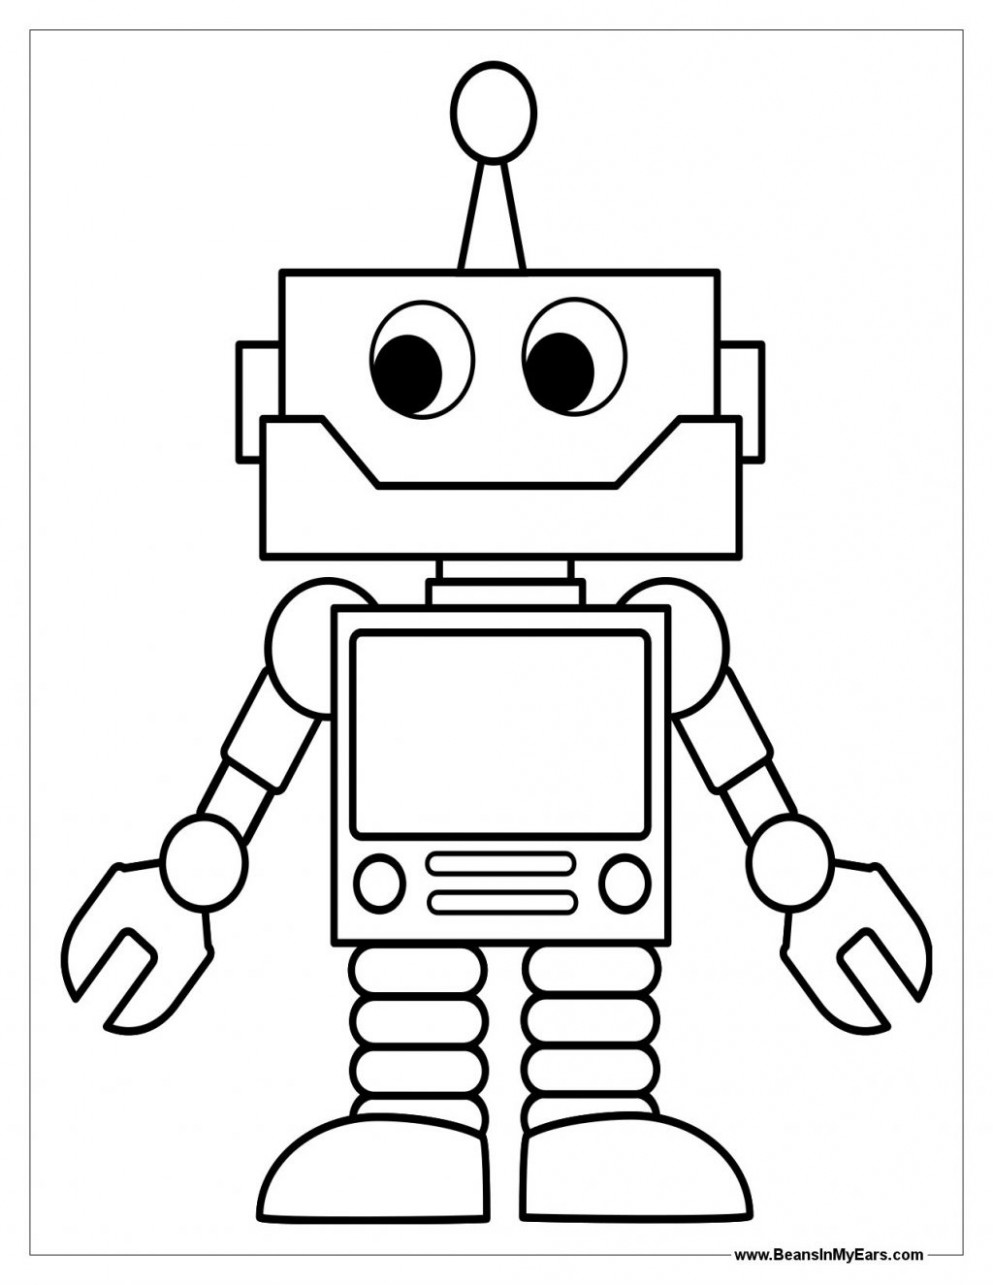 coloring page ~ Fantastic Robot Coloring Pages To Print In With ..